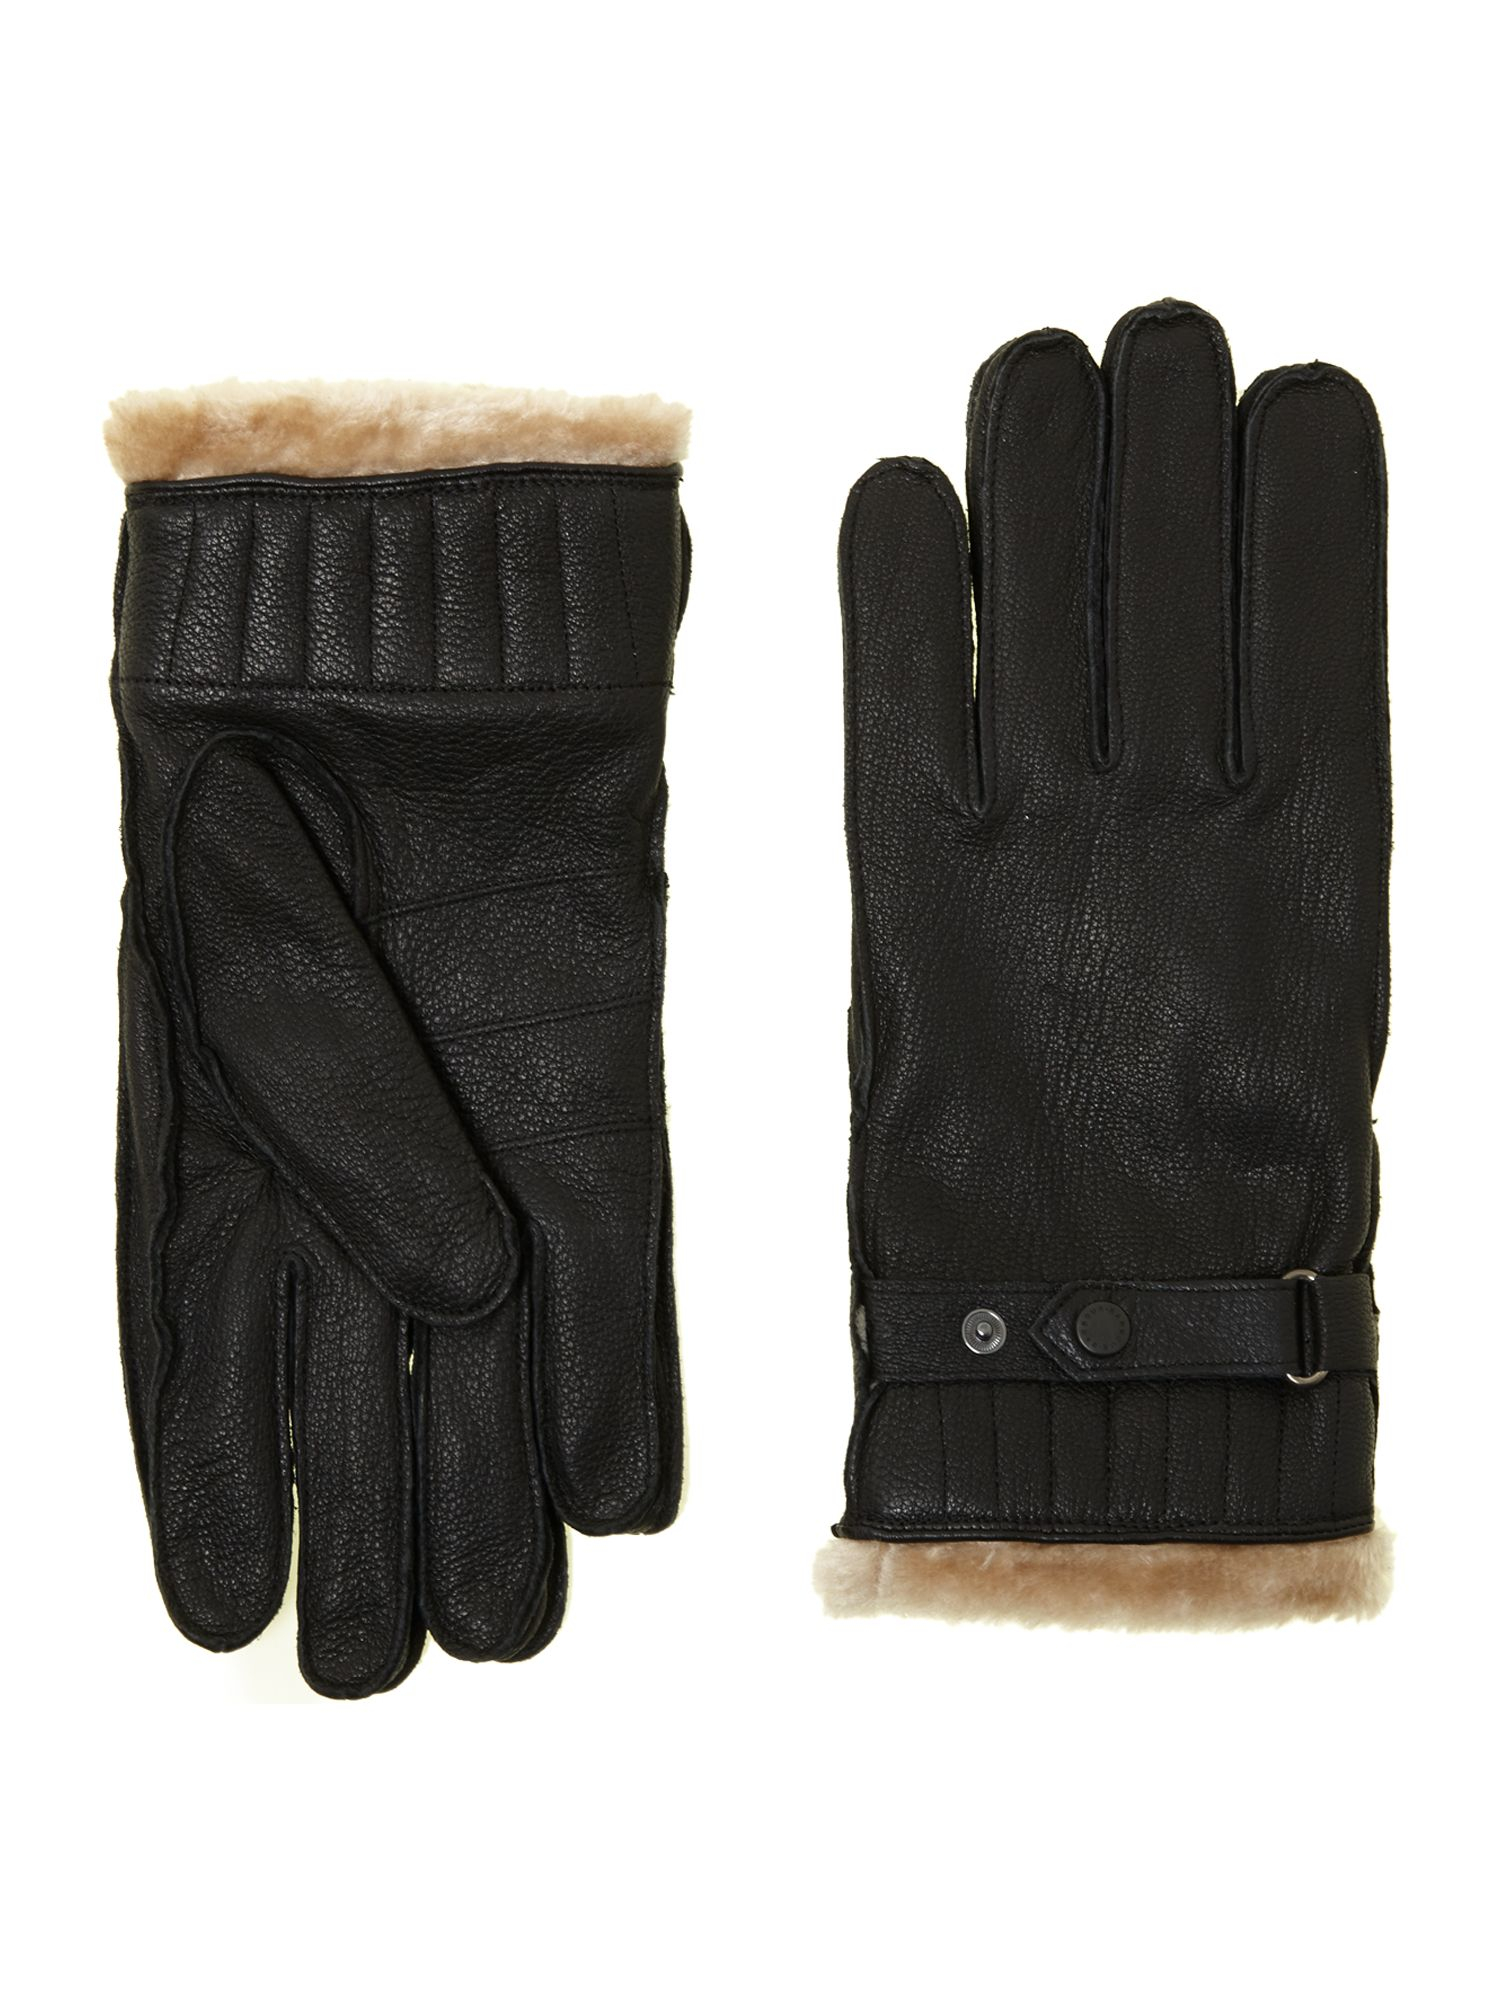 Barbour black leather utility gloves - Gallery